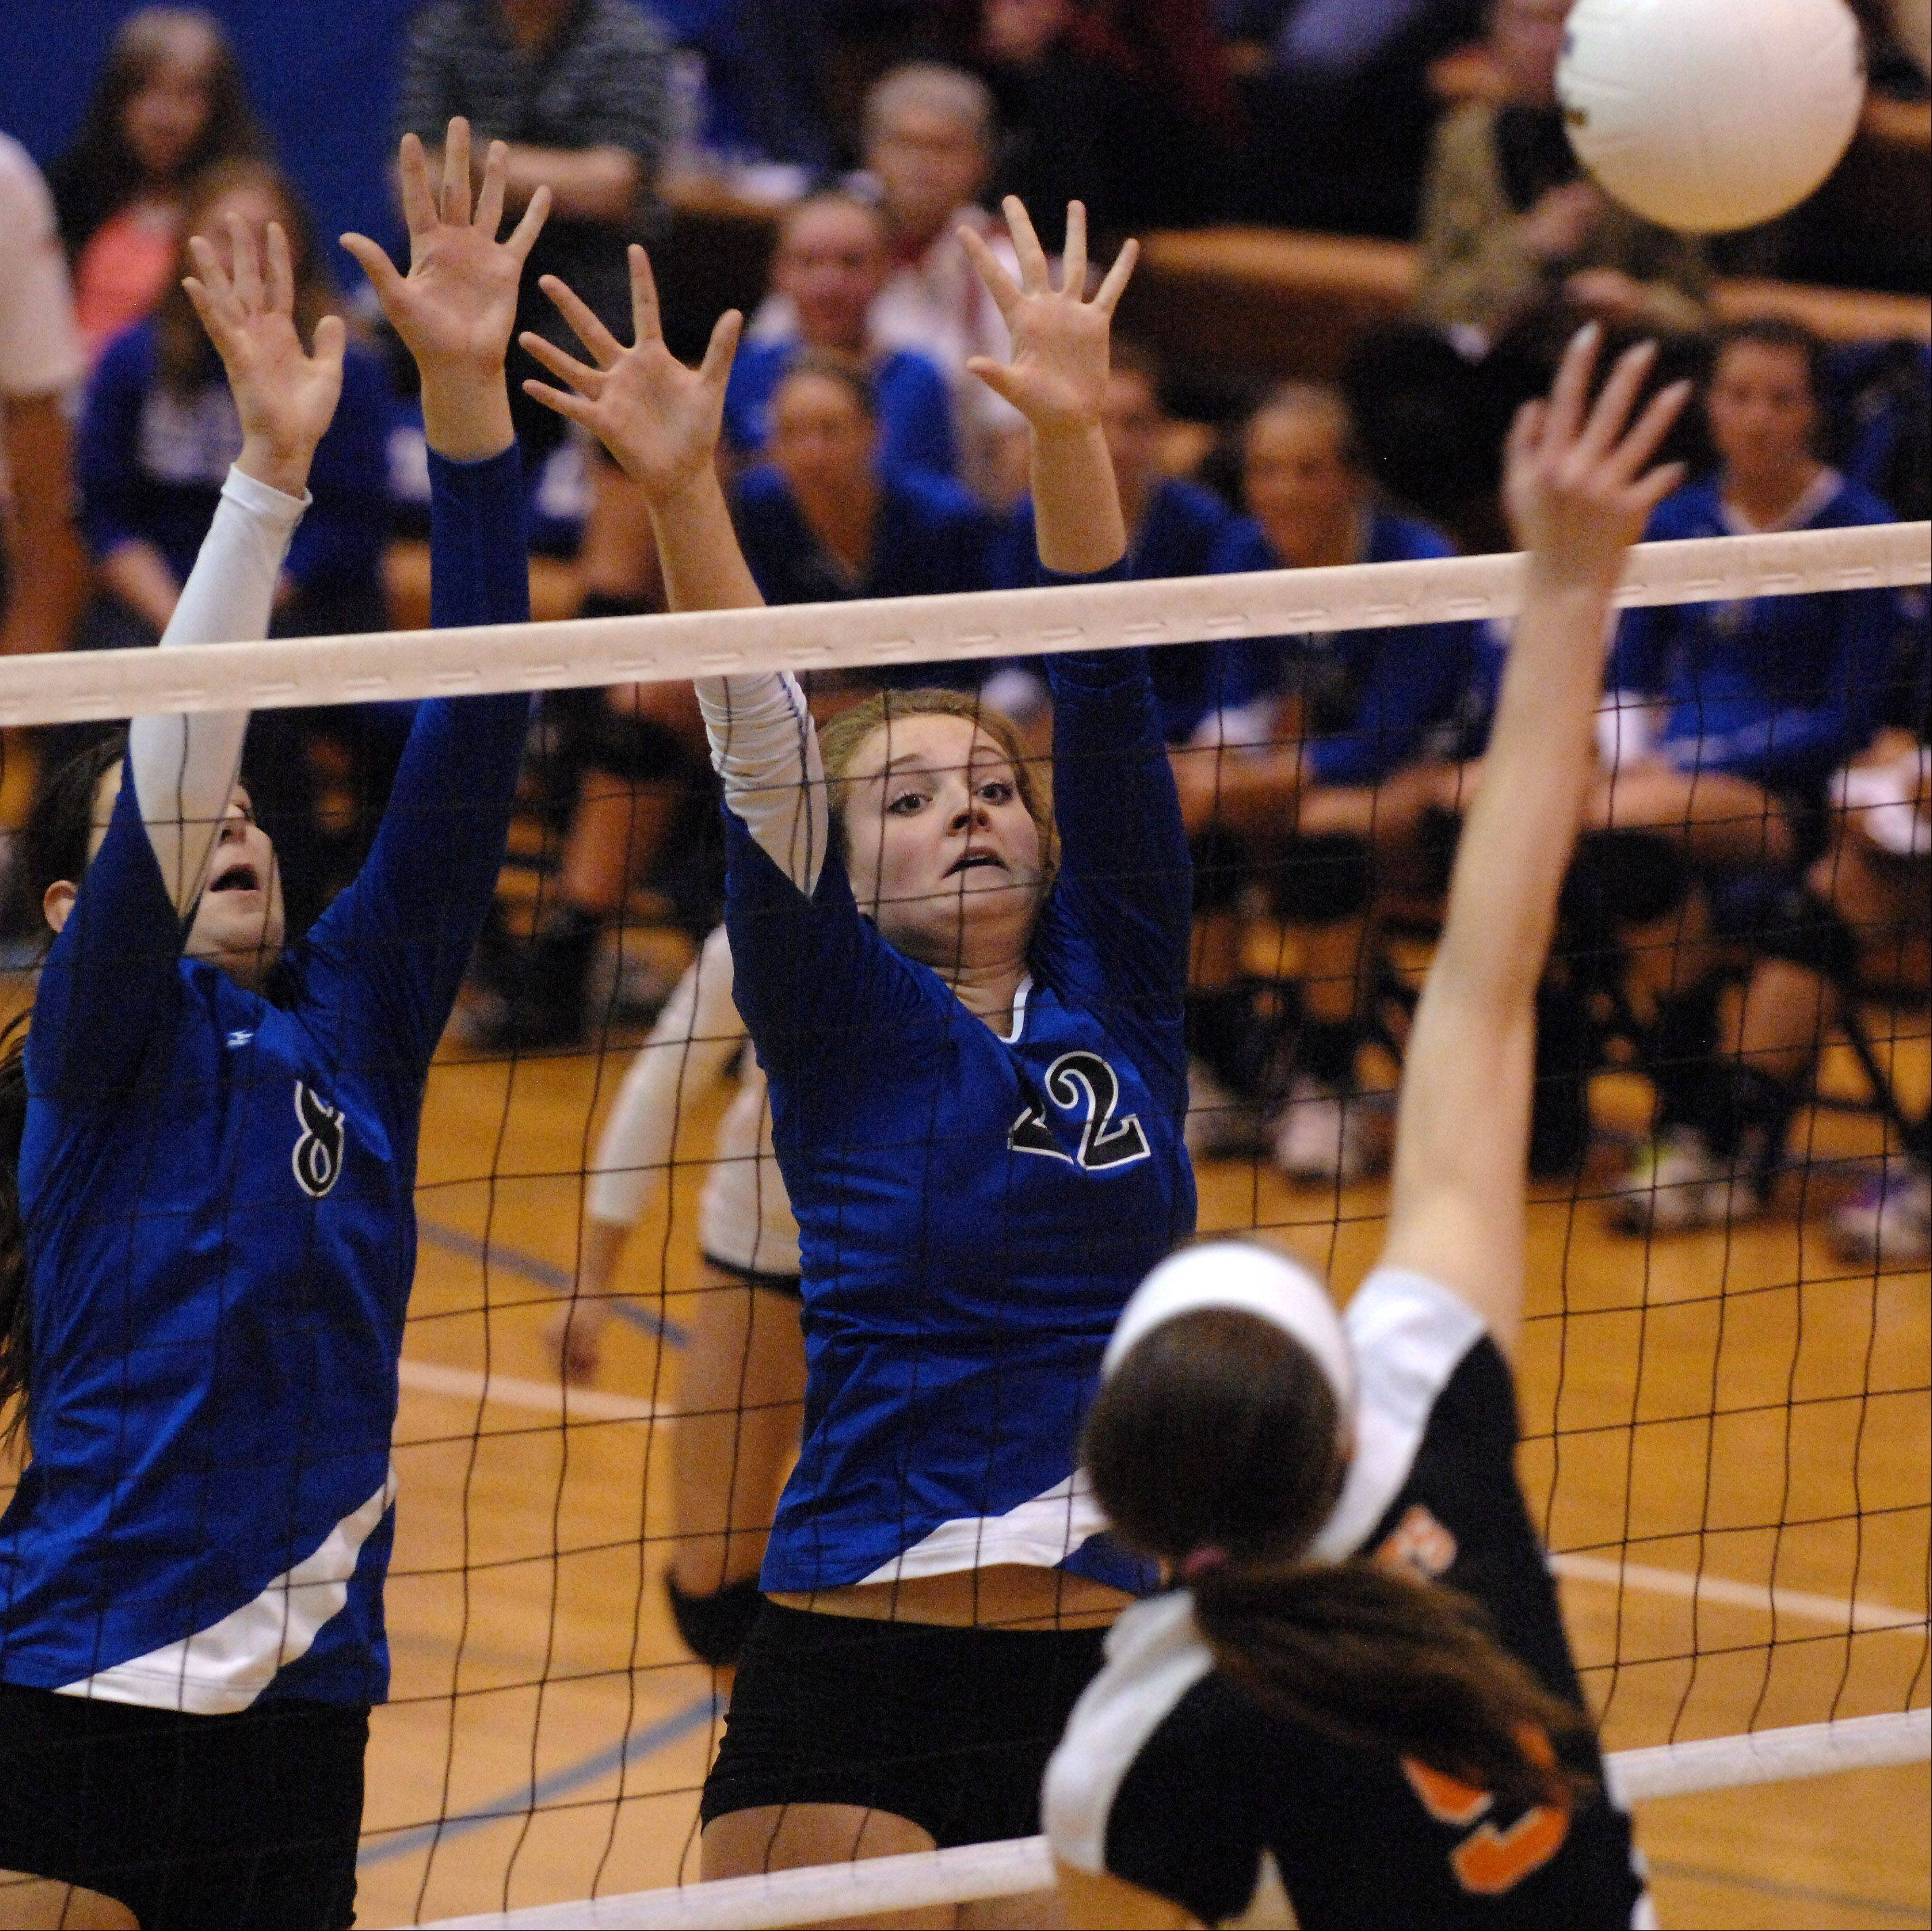 Rick West/rwest@dailyherald.comGeneva's Jess Wicinski, left, and Maddie Courter go up for a block against St. Charles East during Tuesday's sectional semifinals at Larkin High School in Elgin.